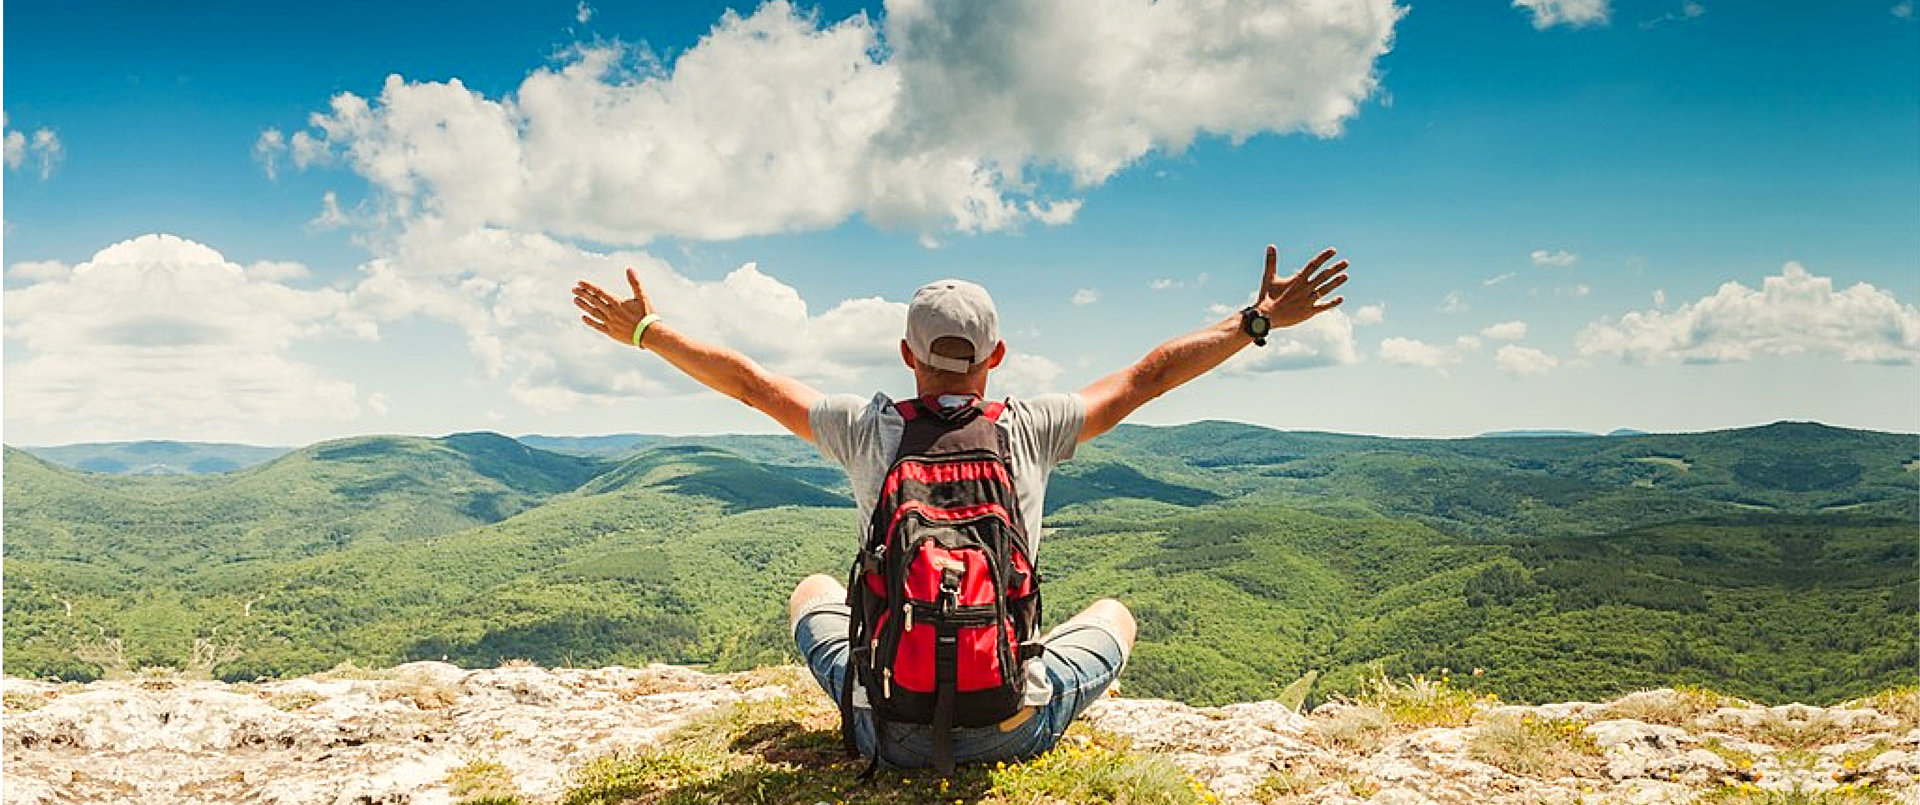 man raising his arms while looking at a mountain view